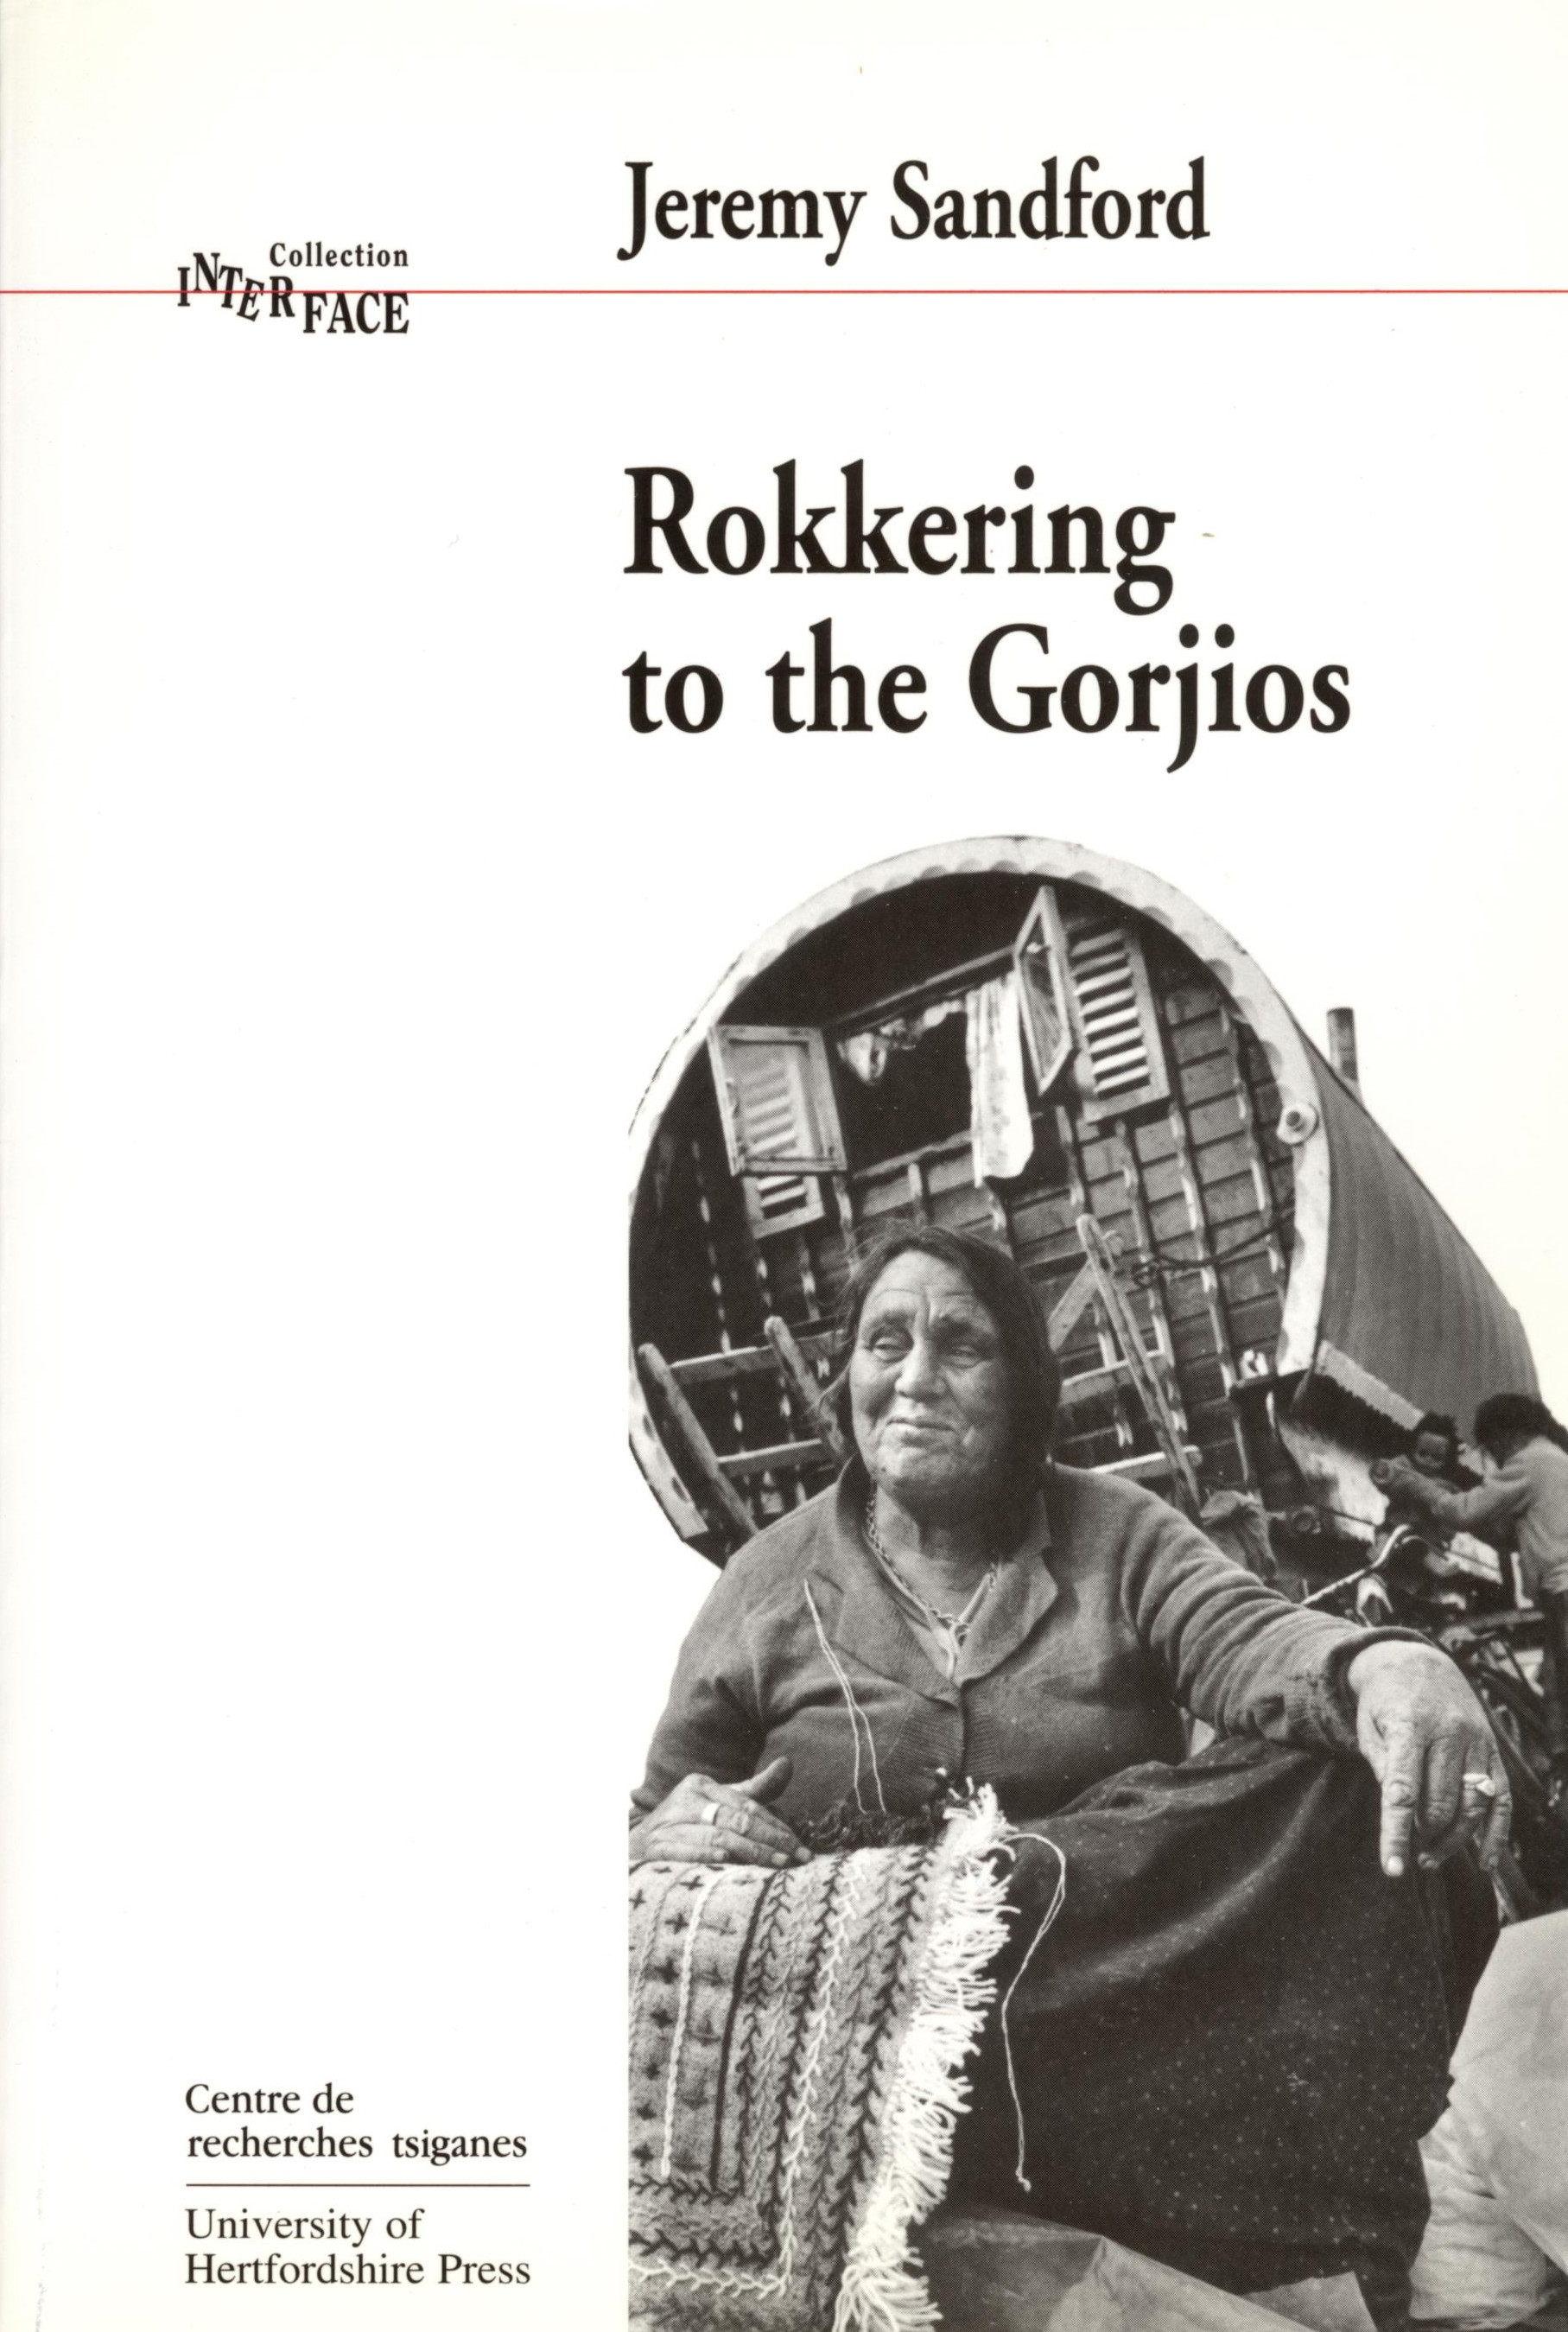 Rokkering to the Gorjios: Conversations with Gypsies